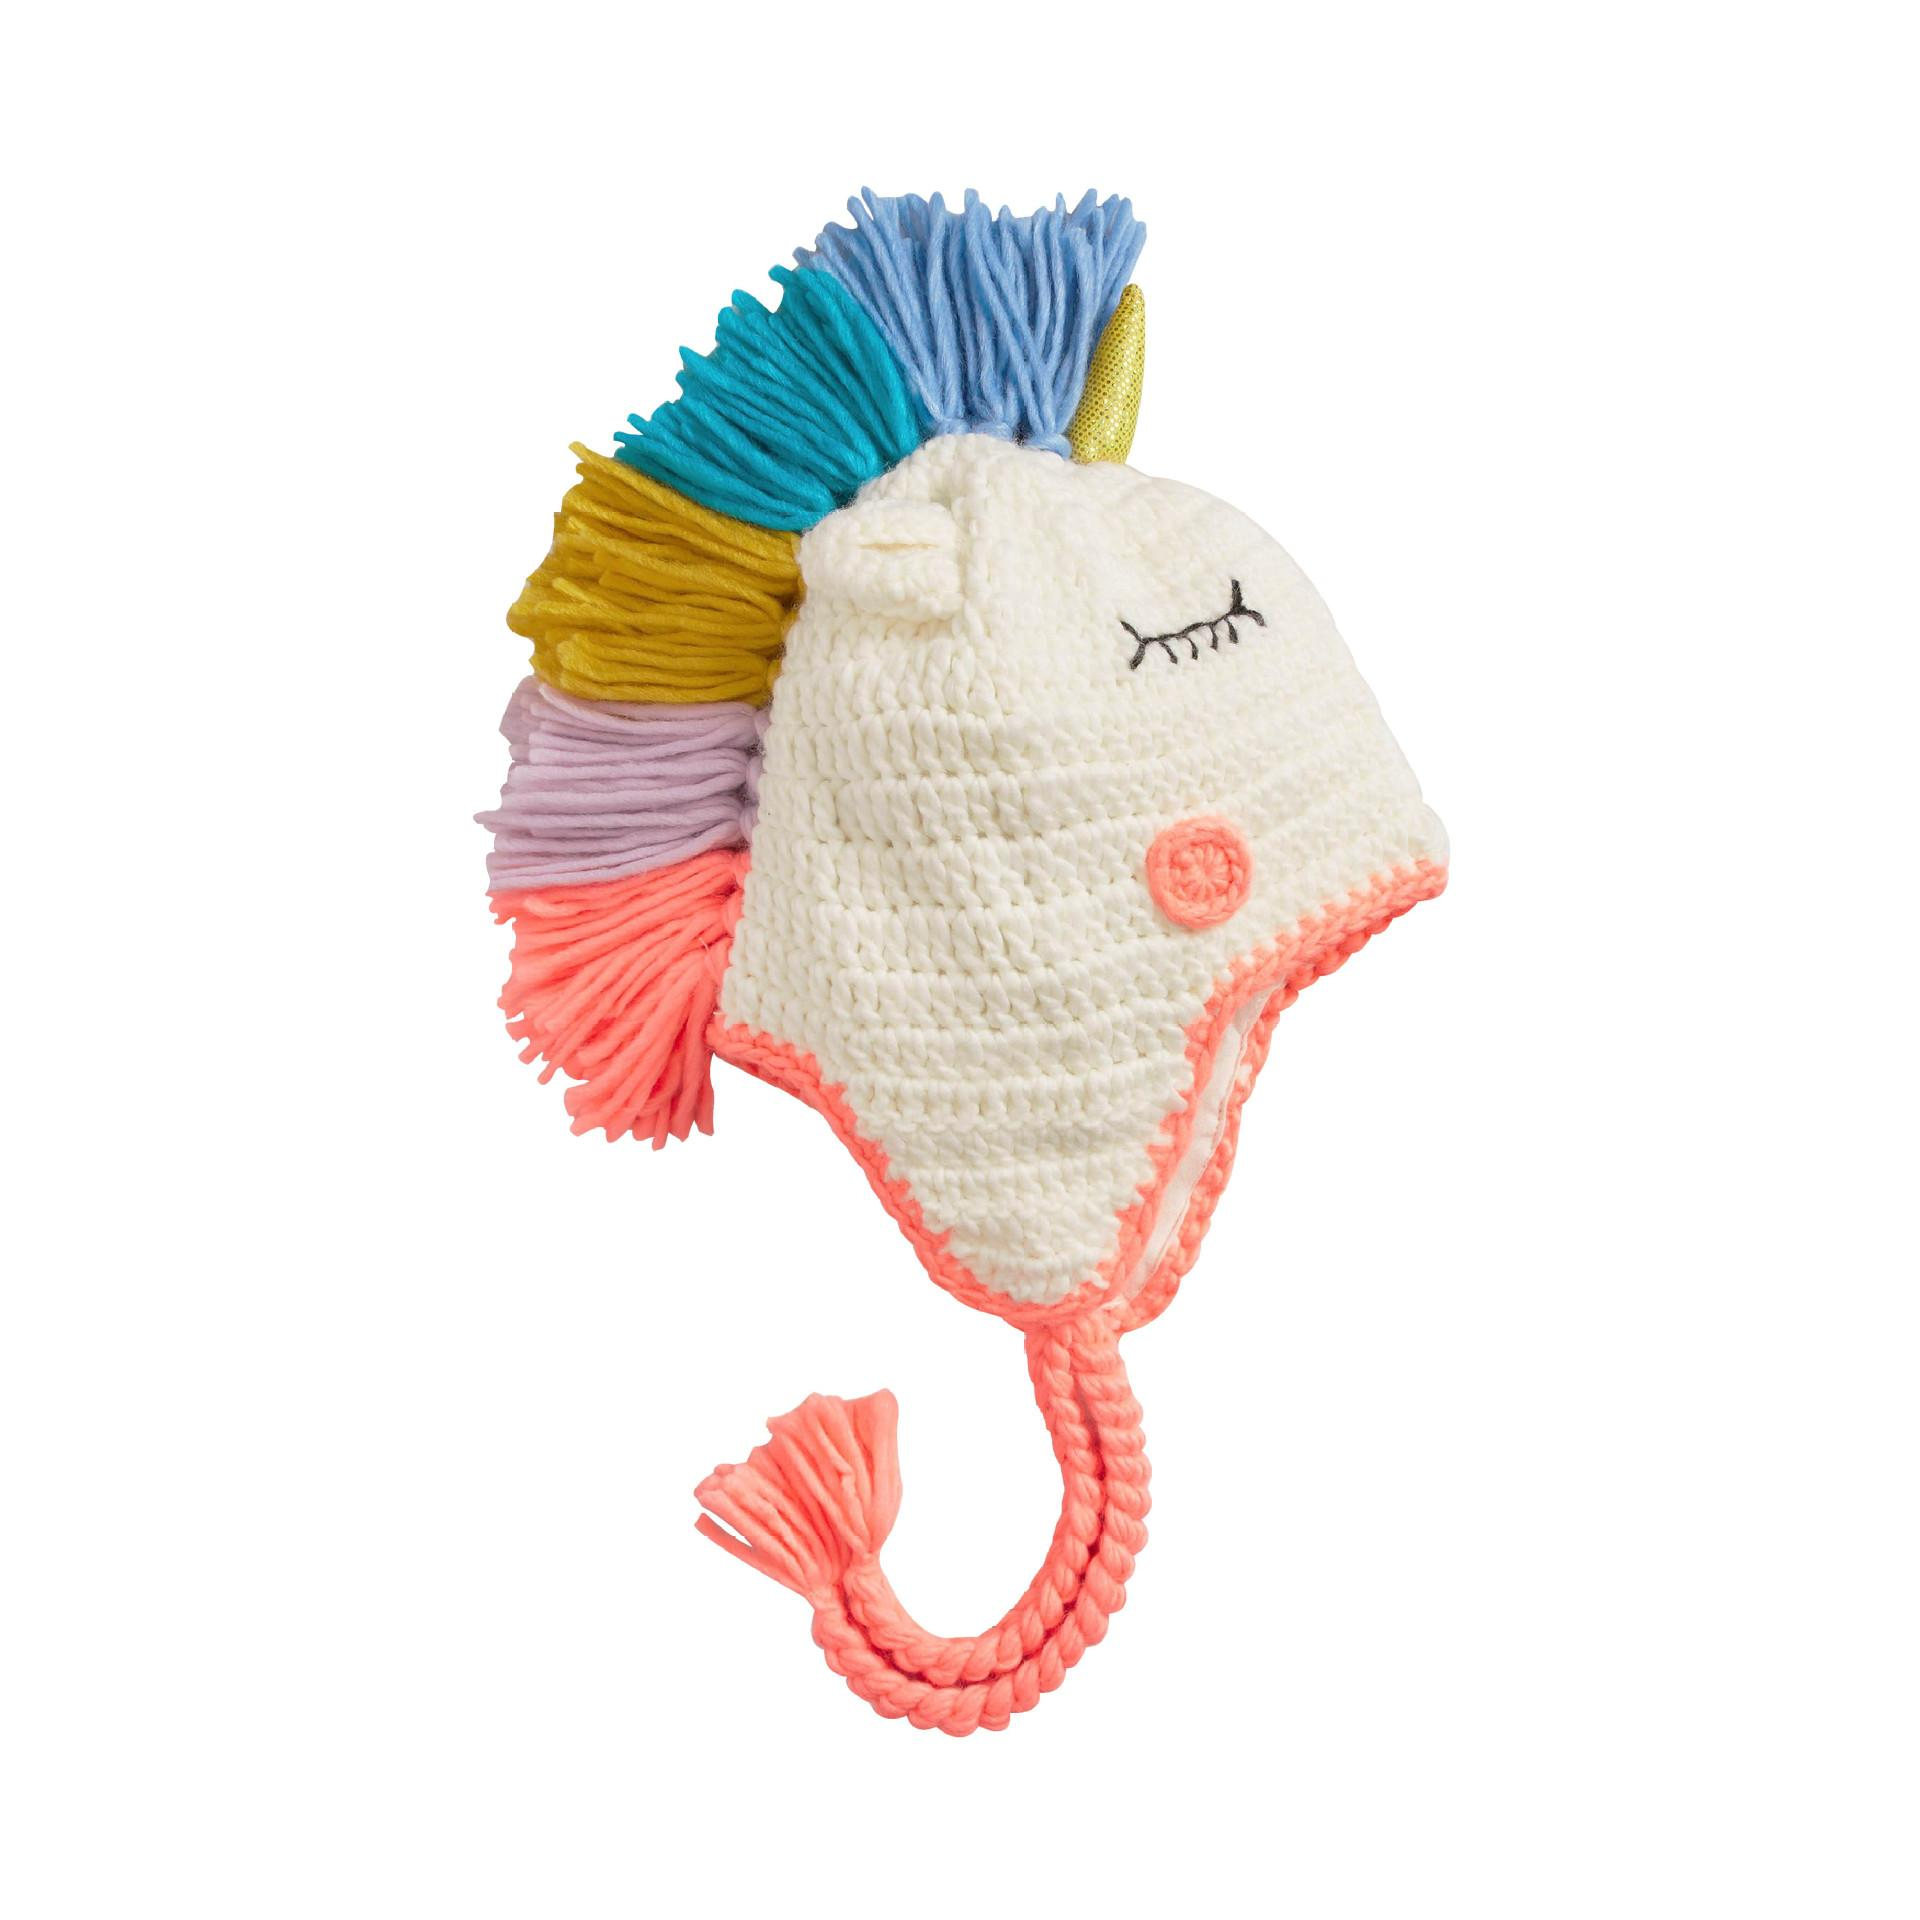 d42c1896f22 Fashion Children Unicorn Knit Hat Colorful Kids Cartoon Tassel Caps ...